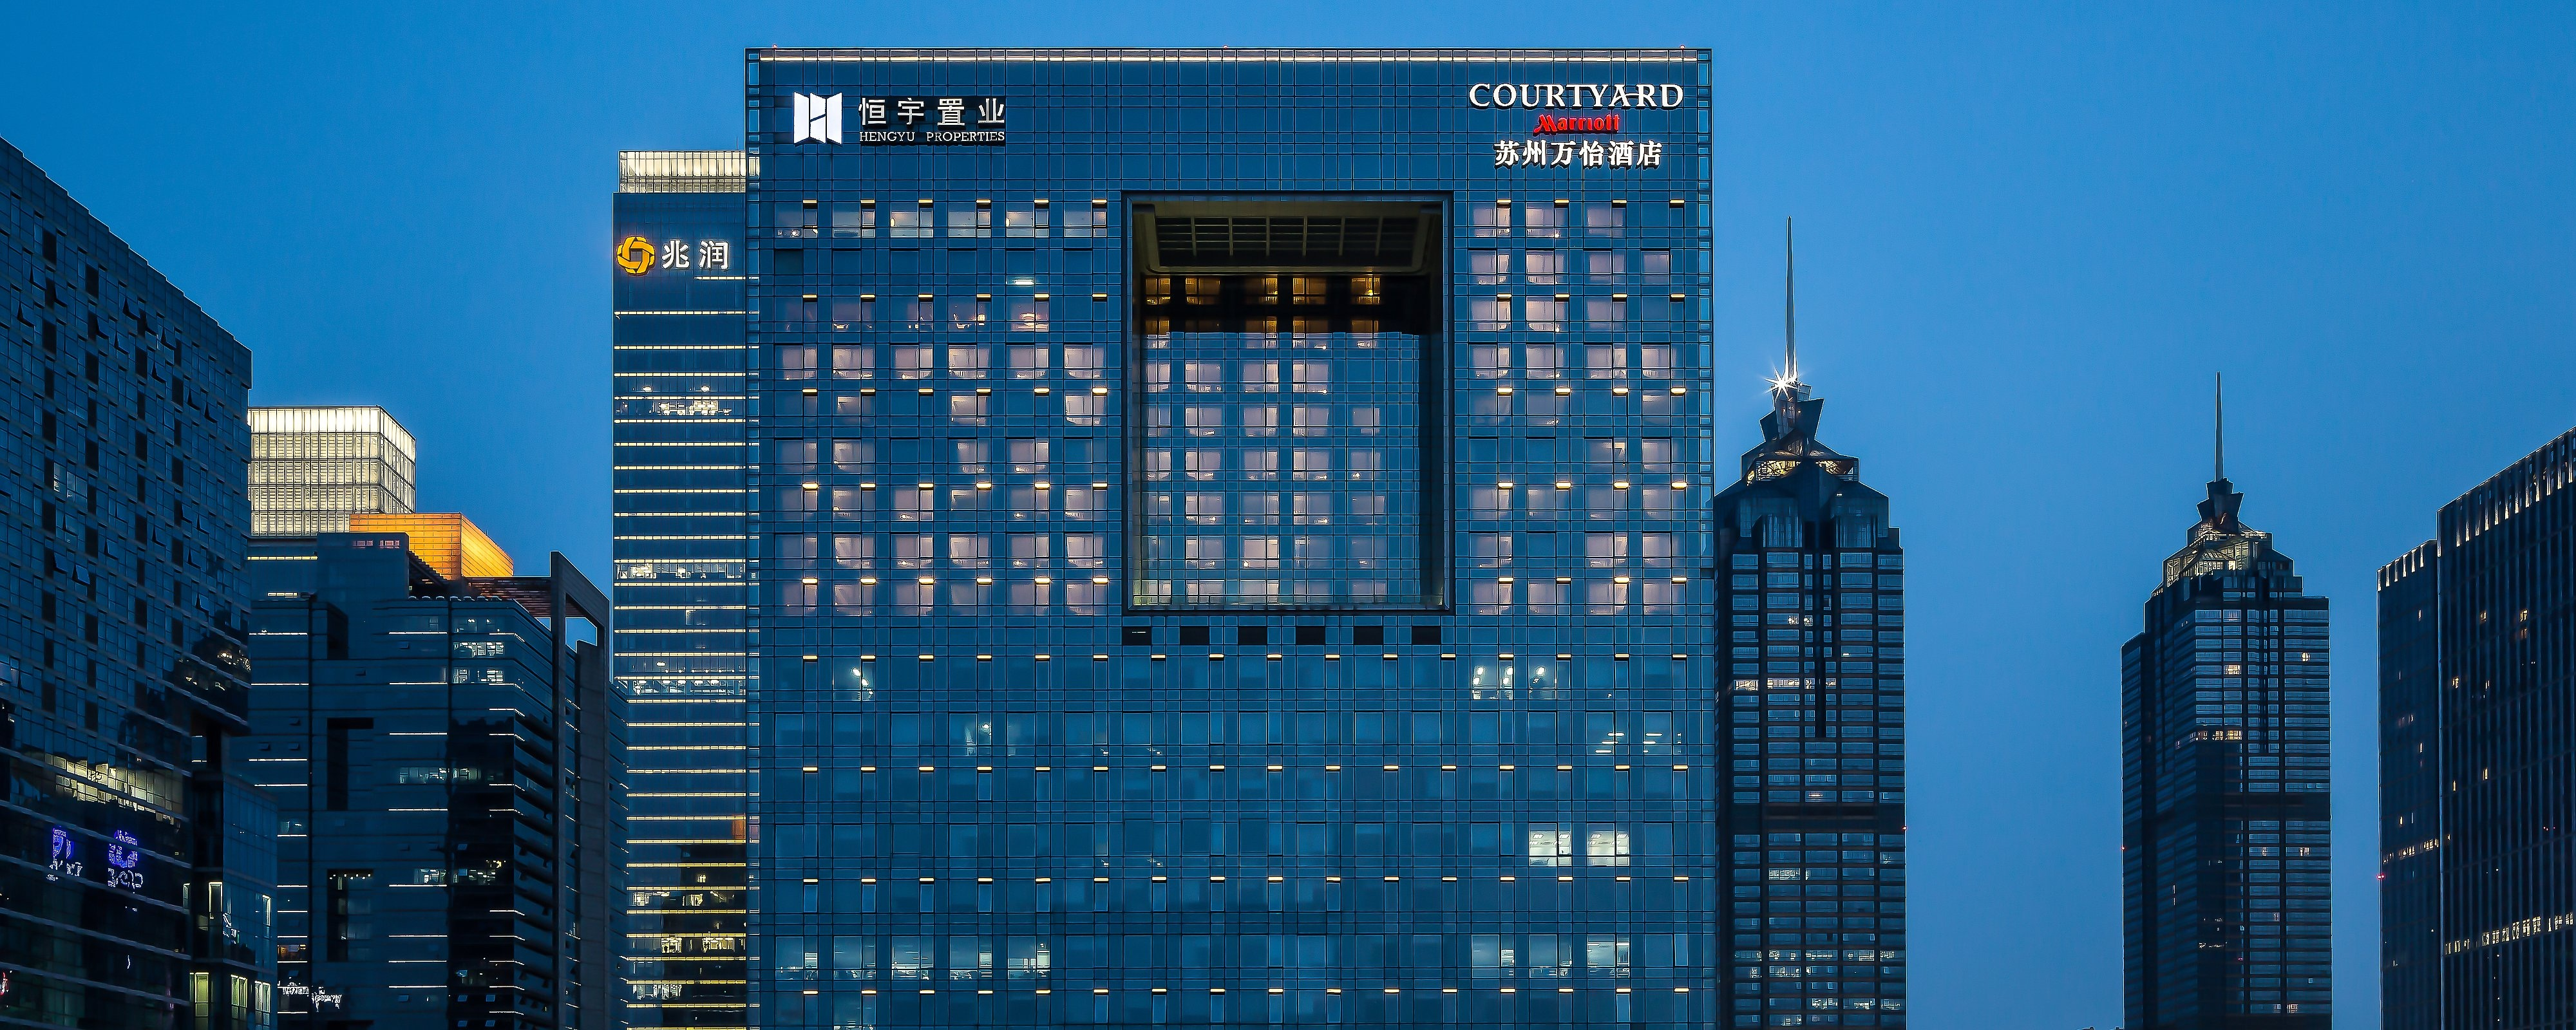 Courtyard By Marriott Suzhou Business Hotel Located At Cbd Of Sip